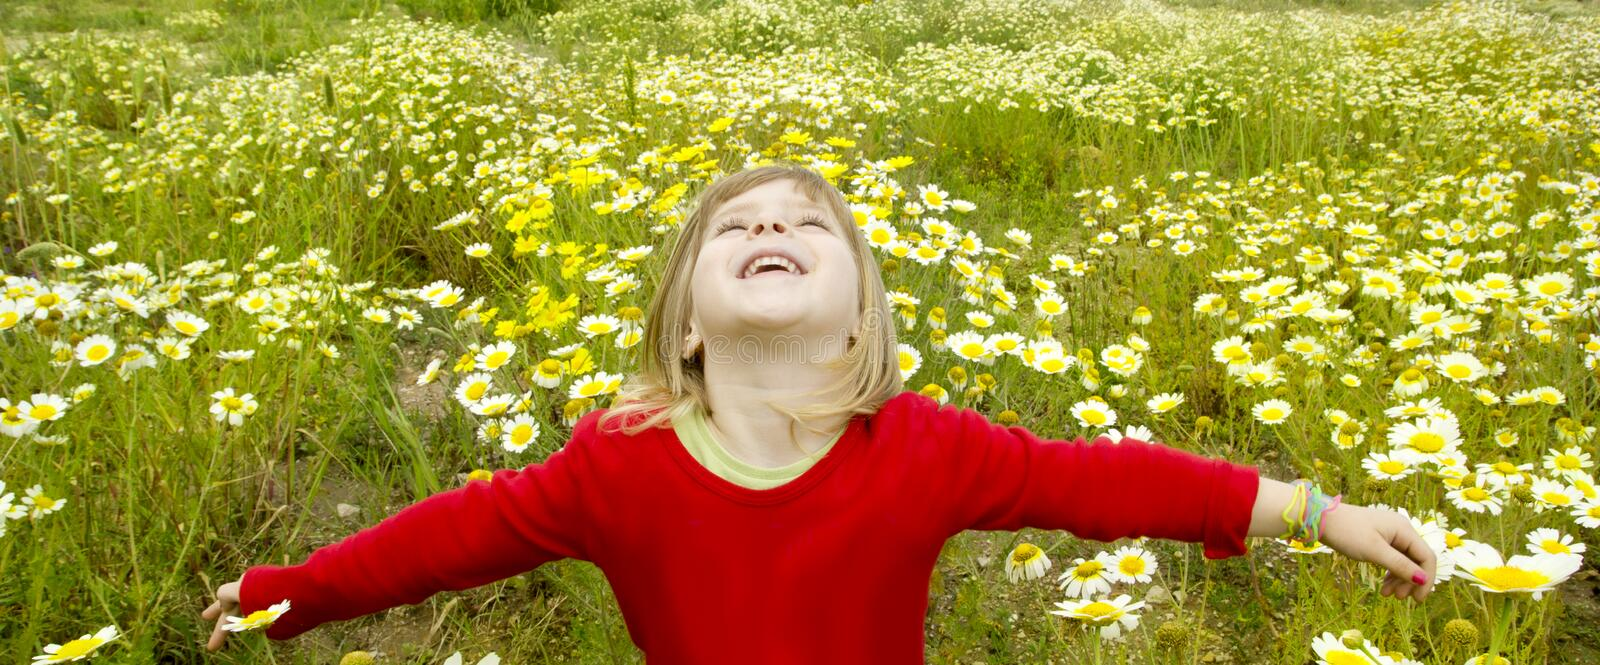 Blond girl open arms spring meadow daisy flowers stock image